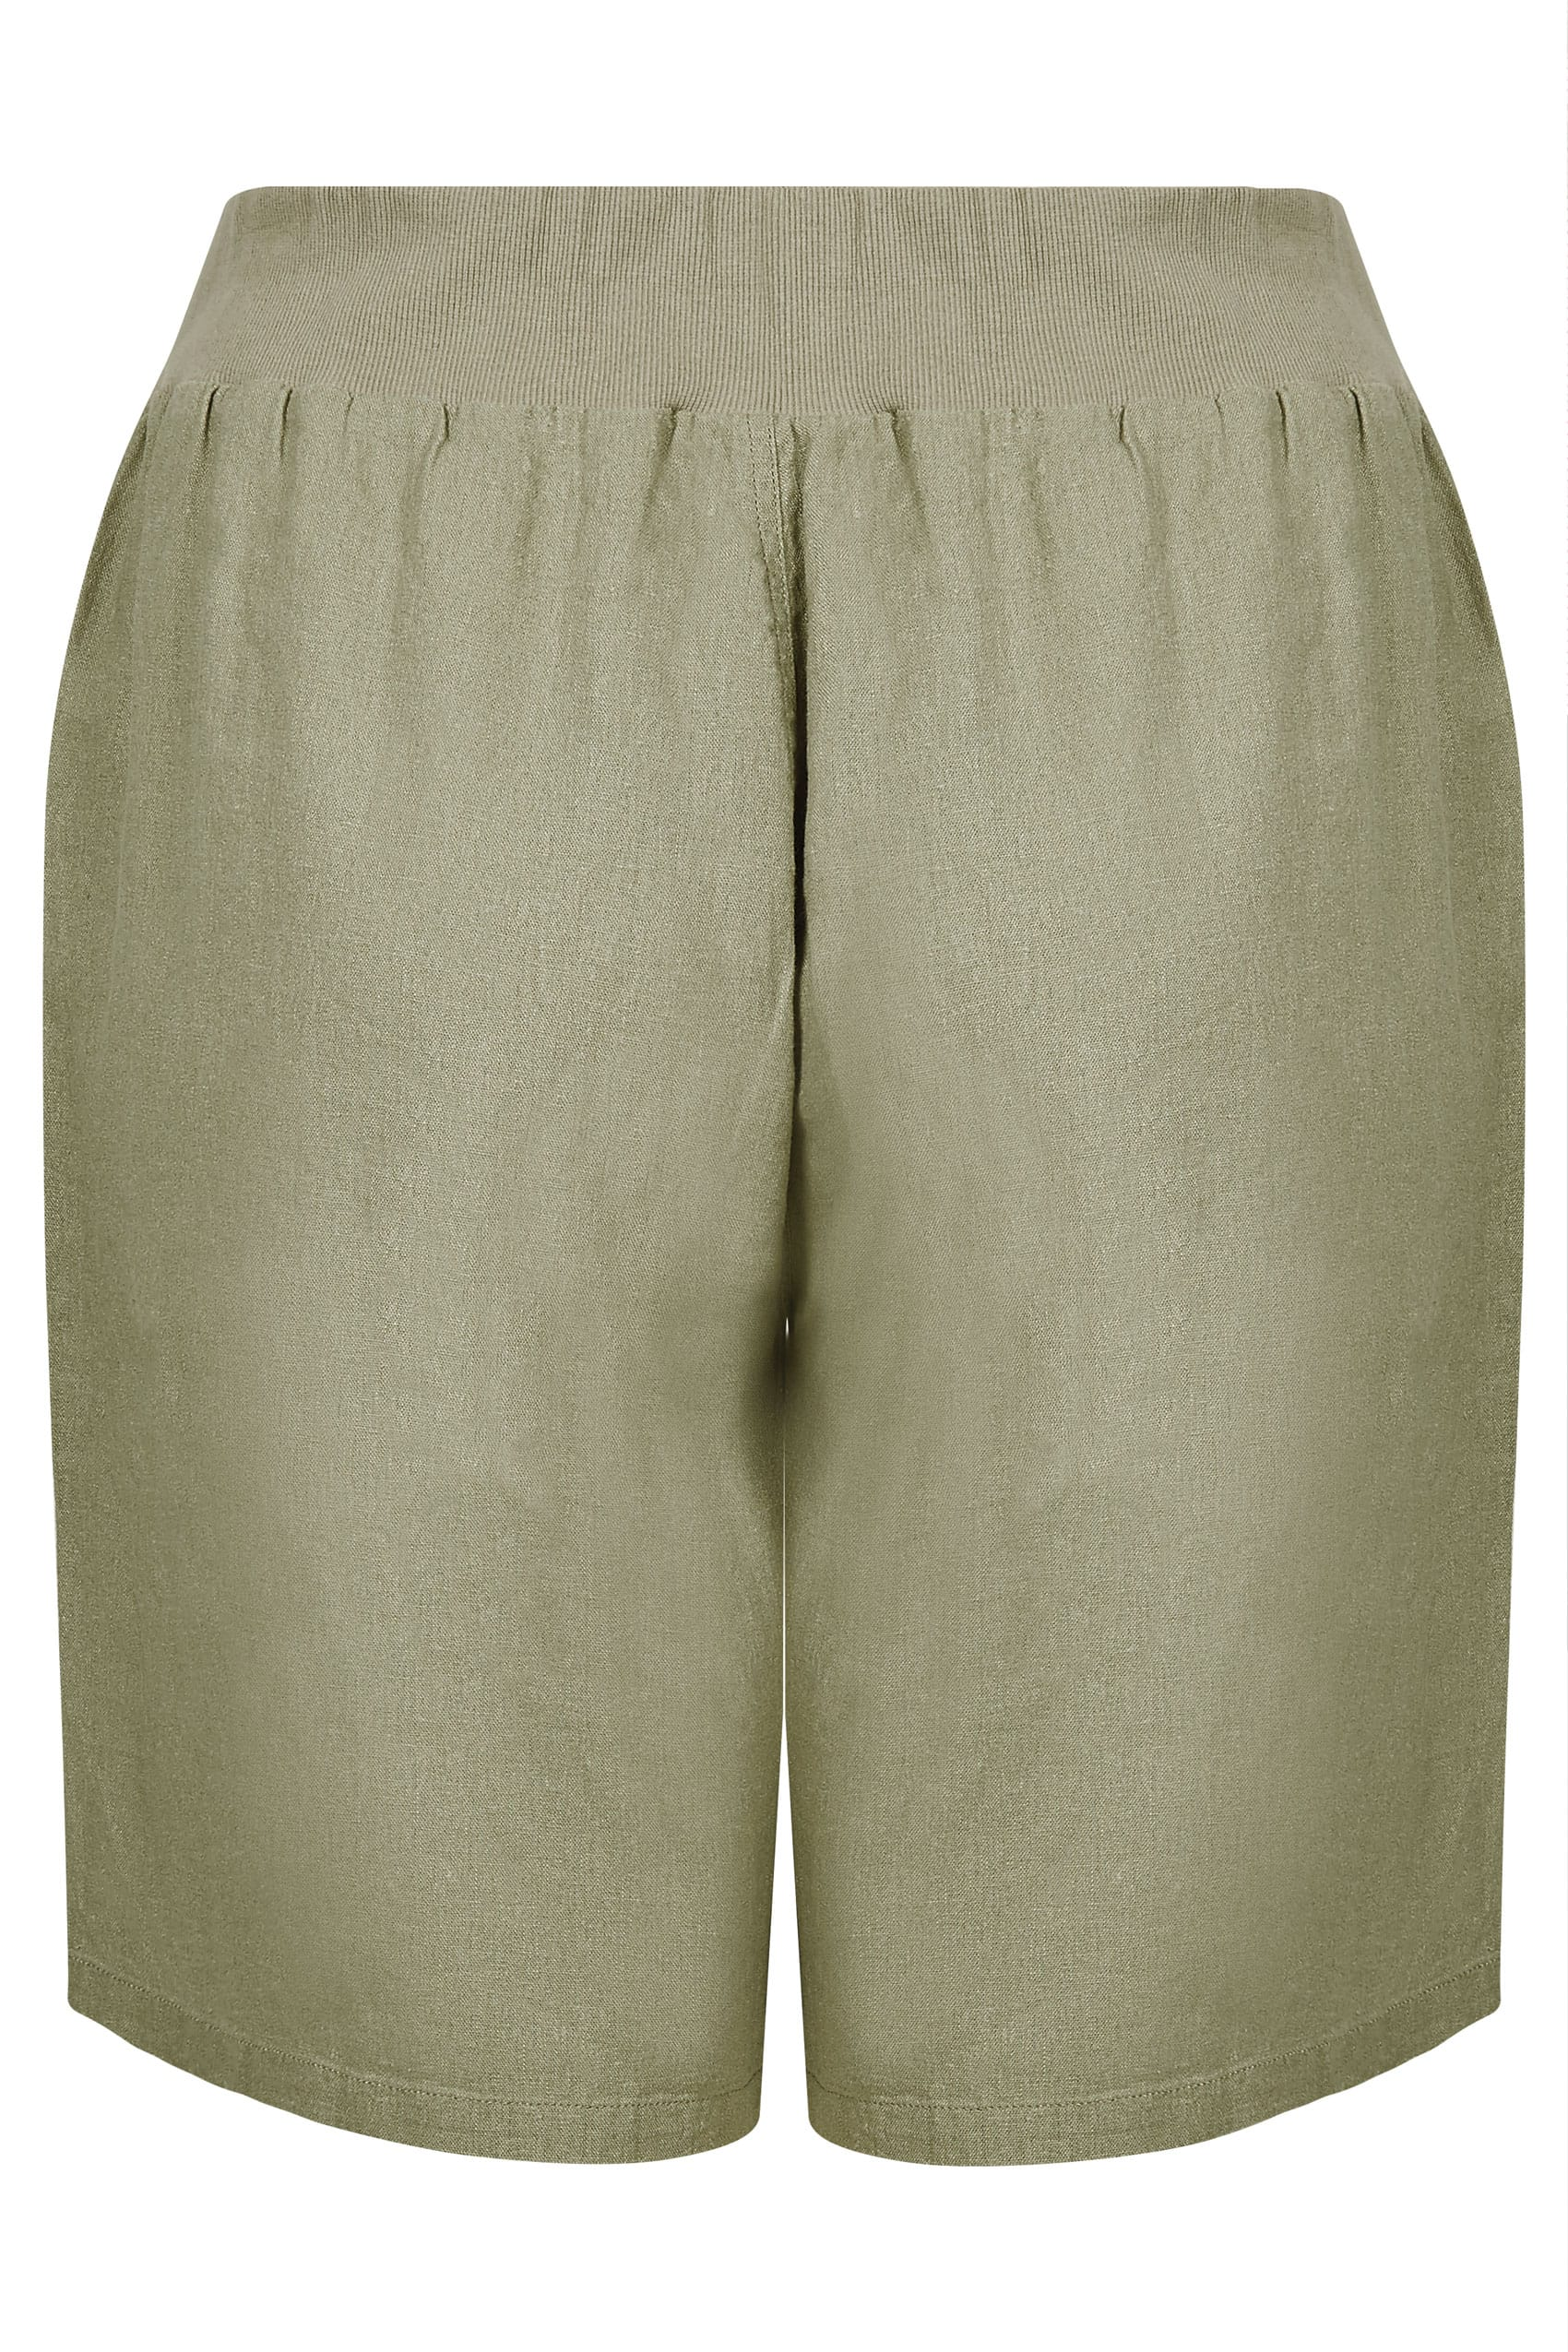 Khaki Linen Mix Pull On Shorts With Pockets, plus size 16 ...